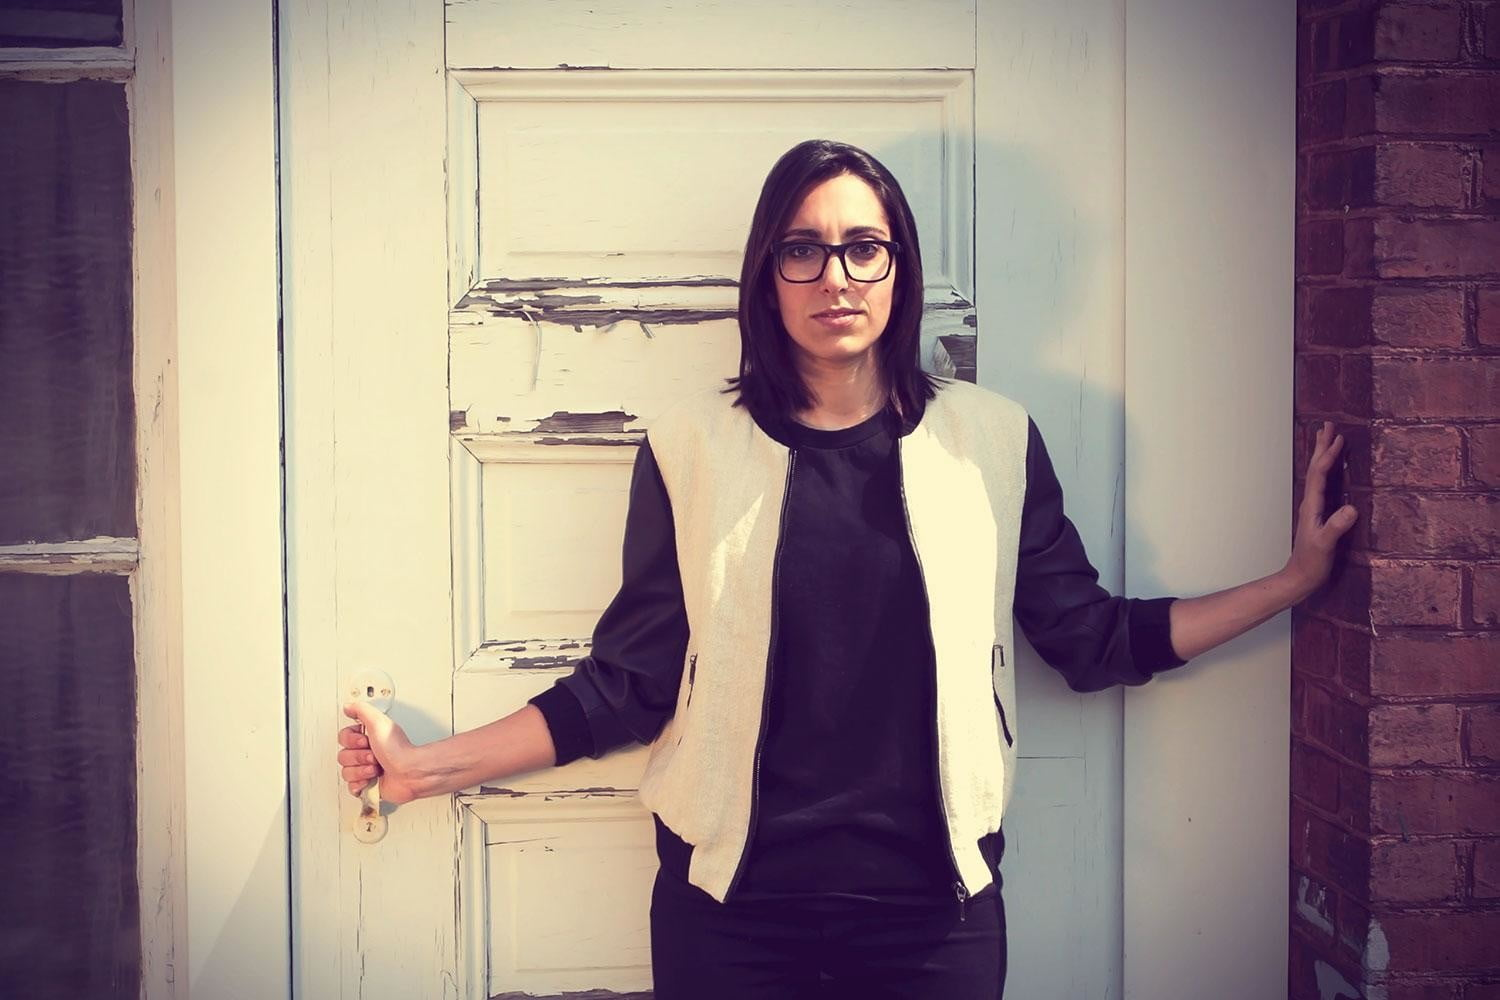 The-Audiophile-Michelle-Chamuel_photo_by_Andy_Taylor